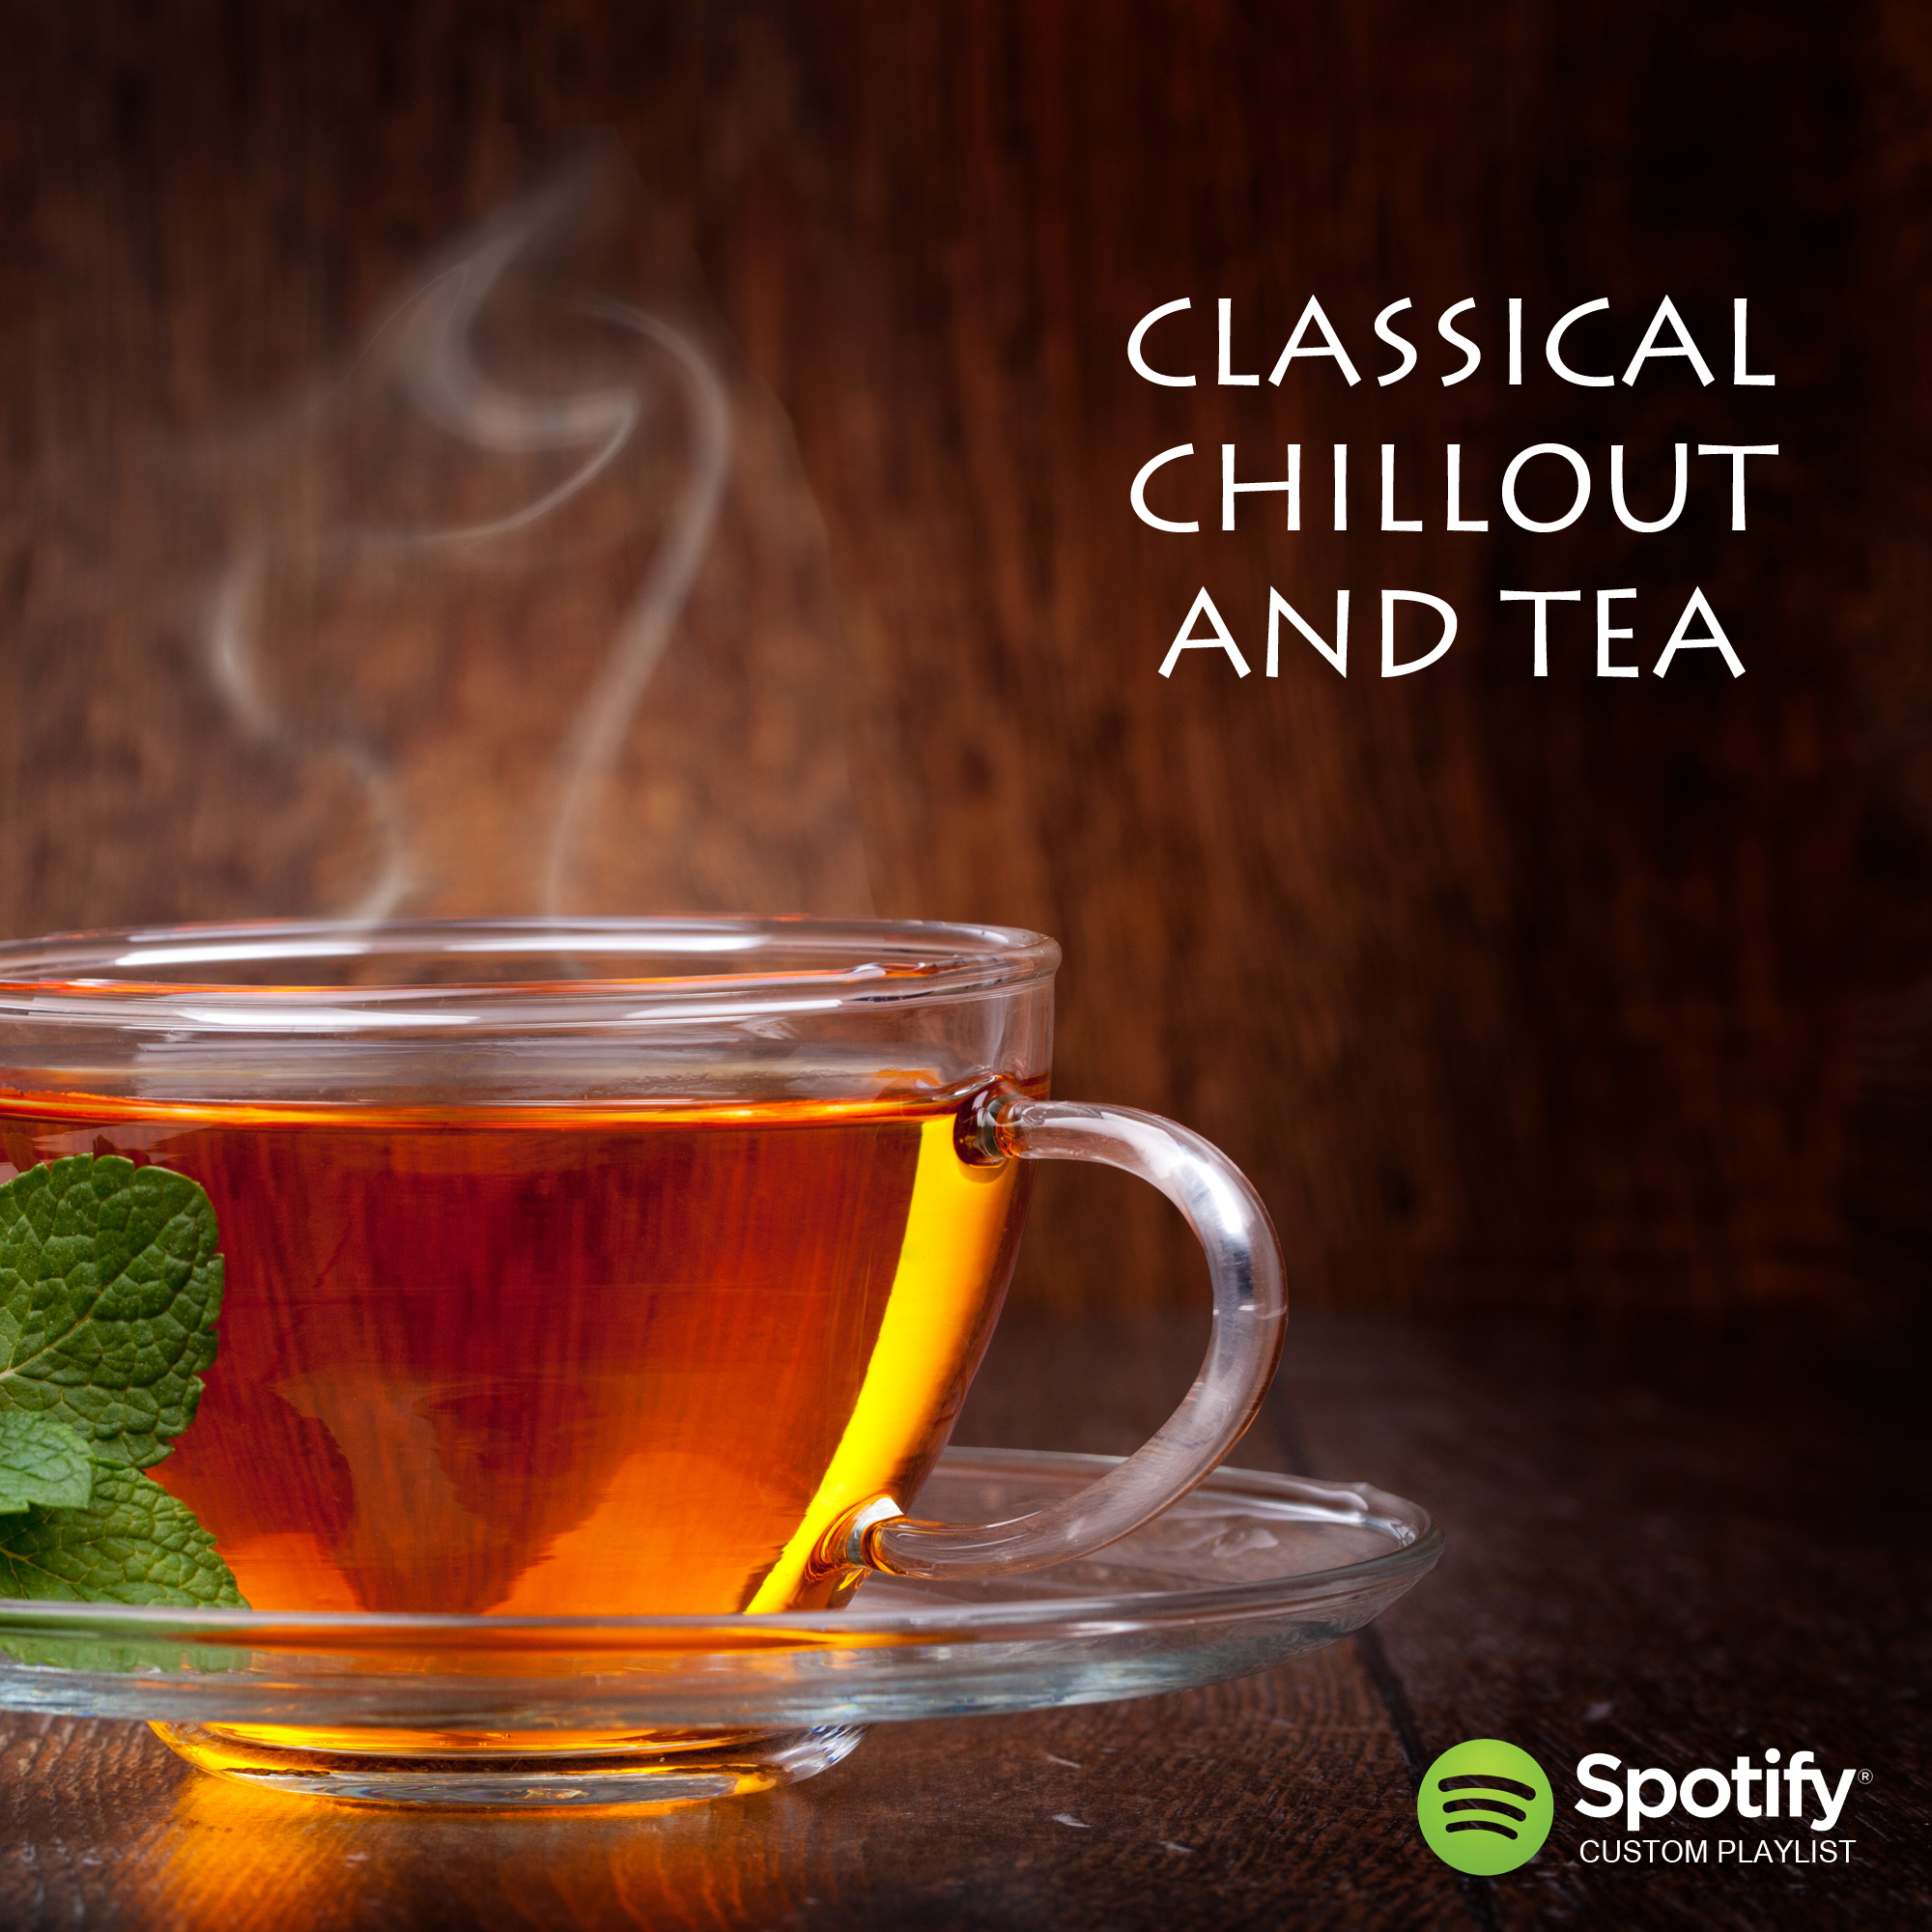 Classical Chill Out and Tea Spotify Playlist